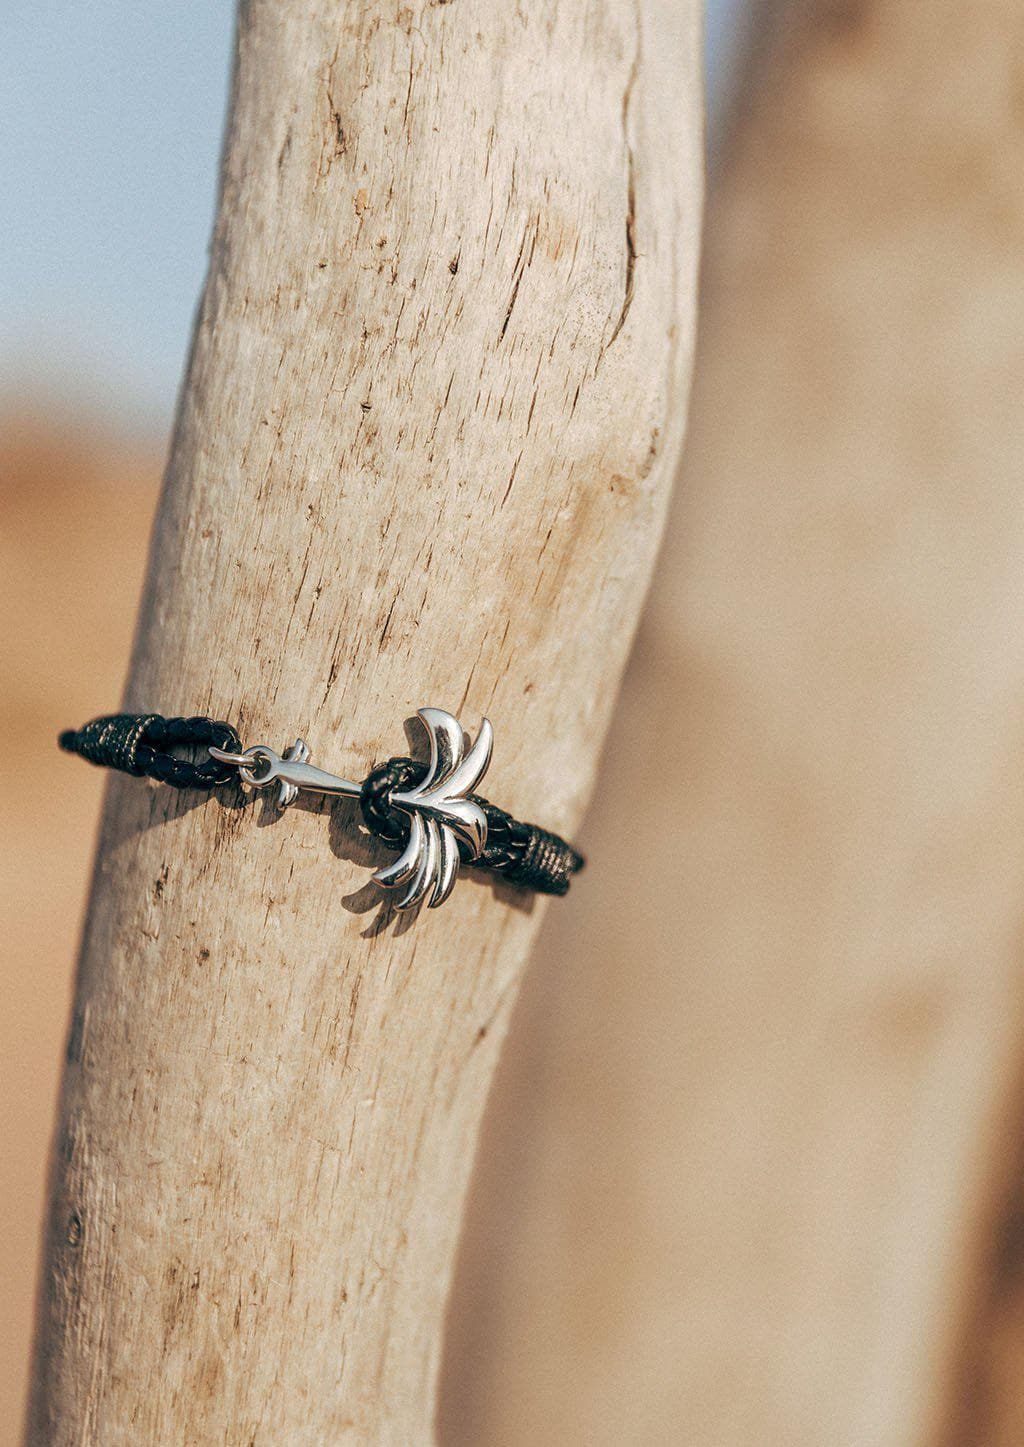 Starlight - Season two Palm anchor bracelet with black leather. On the beach.